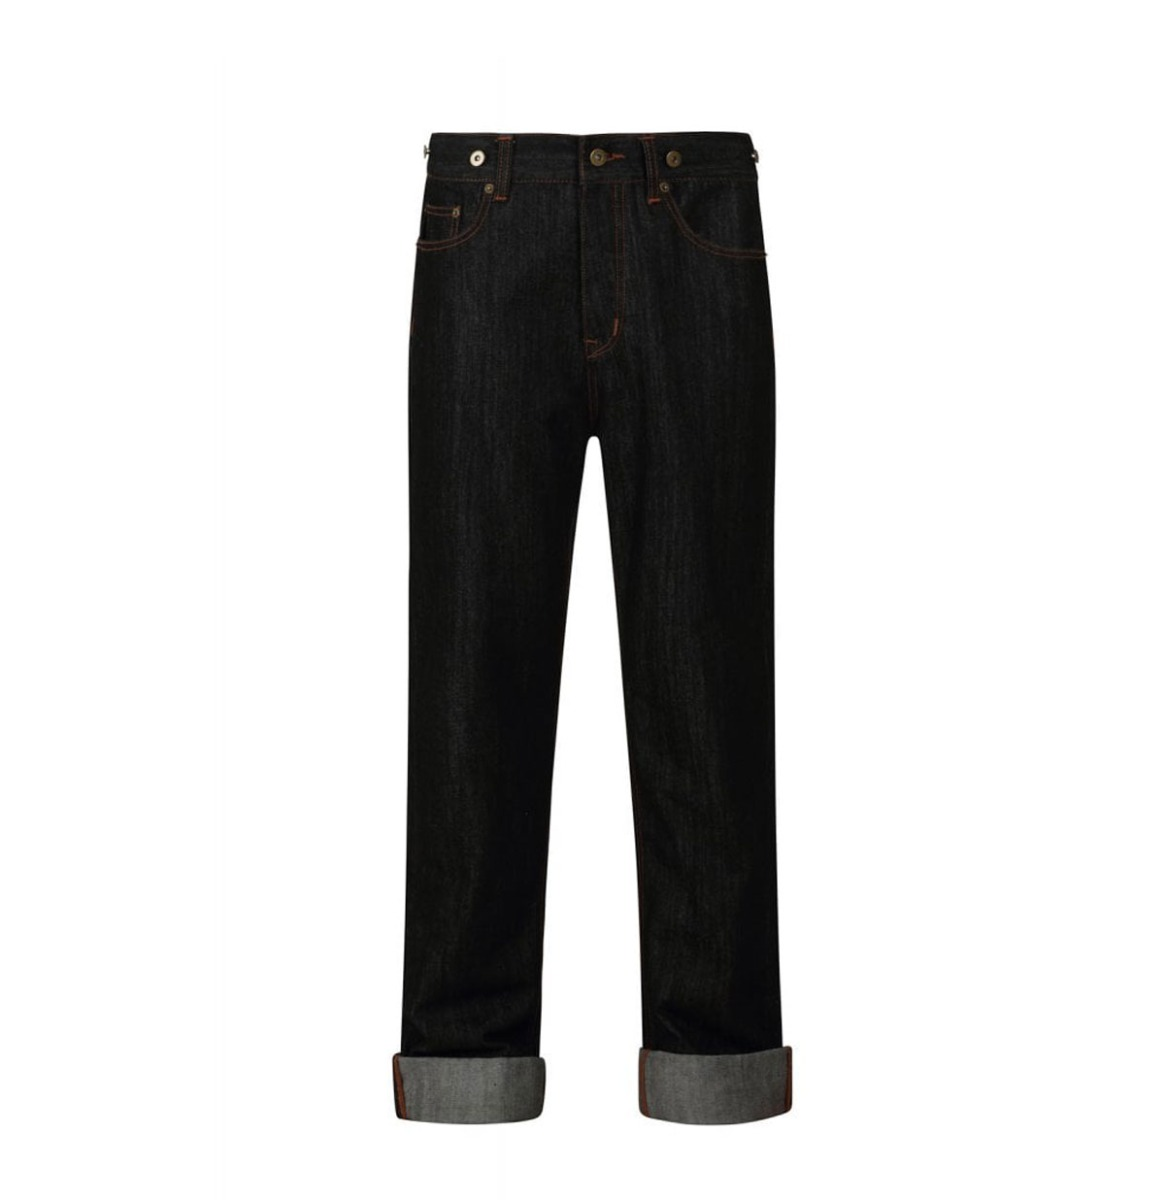 Collectif Eddie Jeans 40s Charcoal